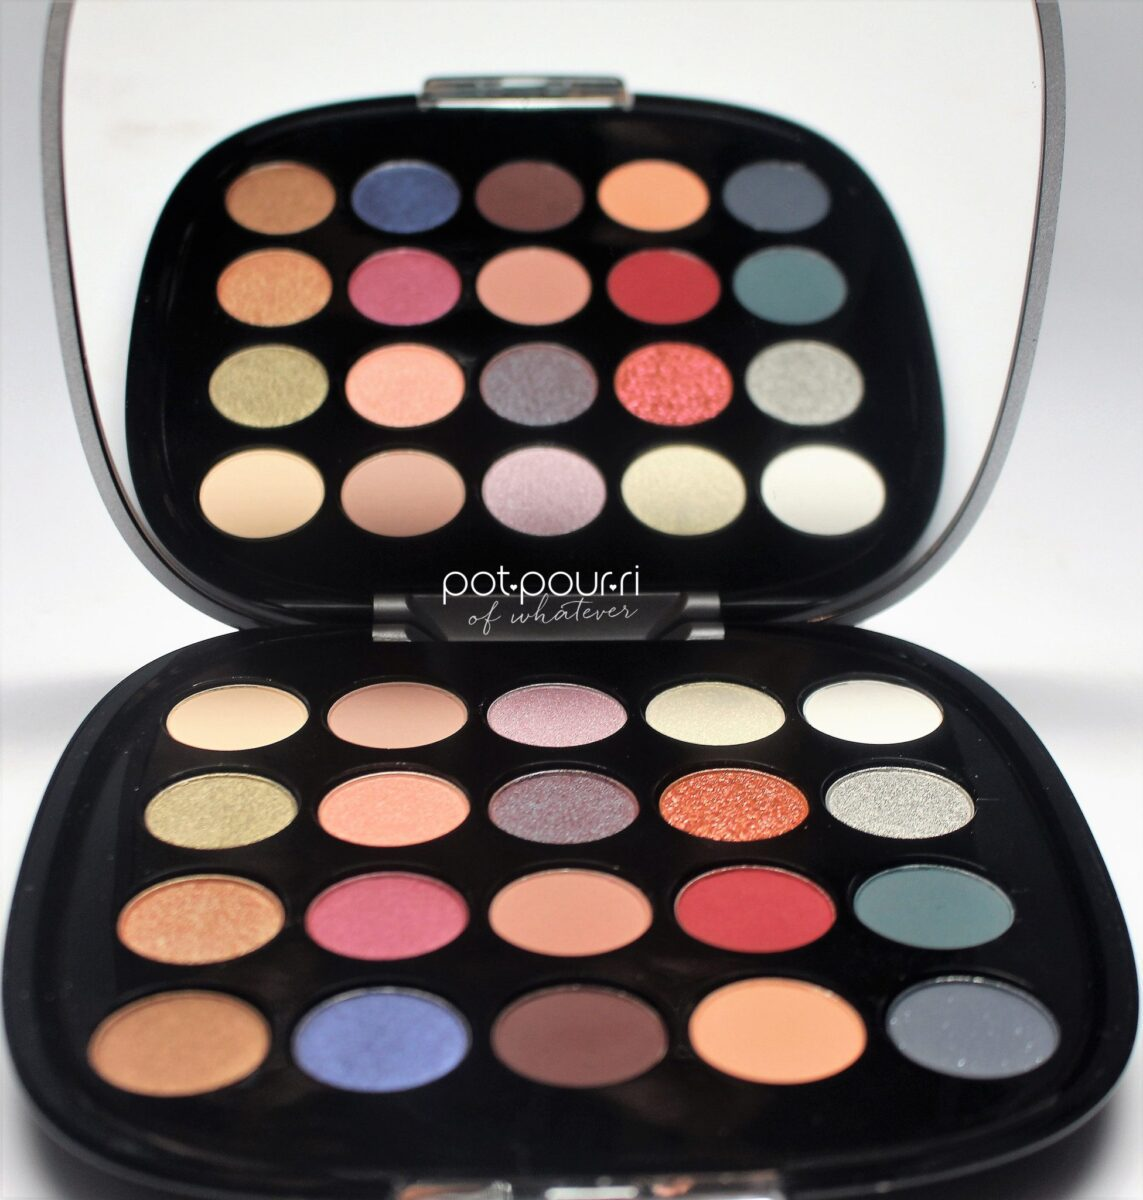 a large mirror and 20 beautiful eyeshadow colors are inside the palette